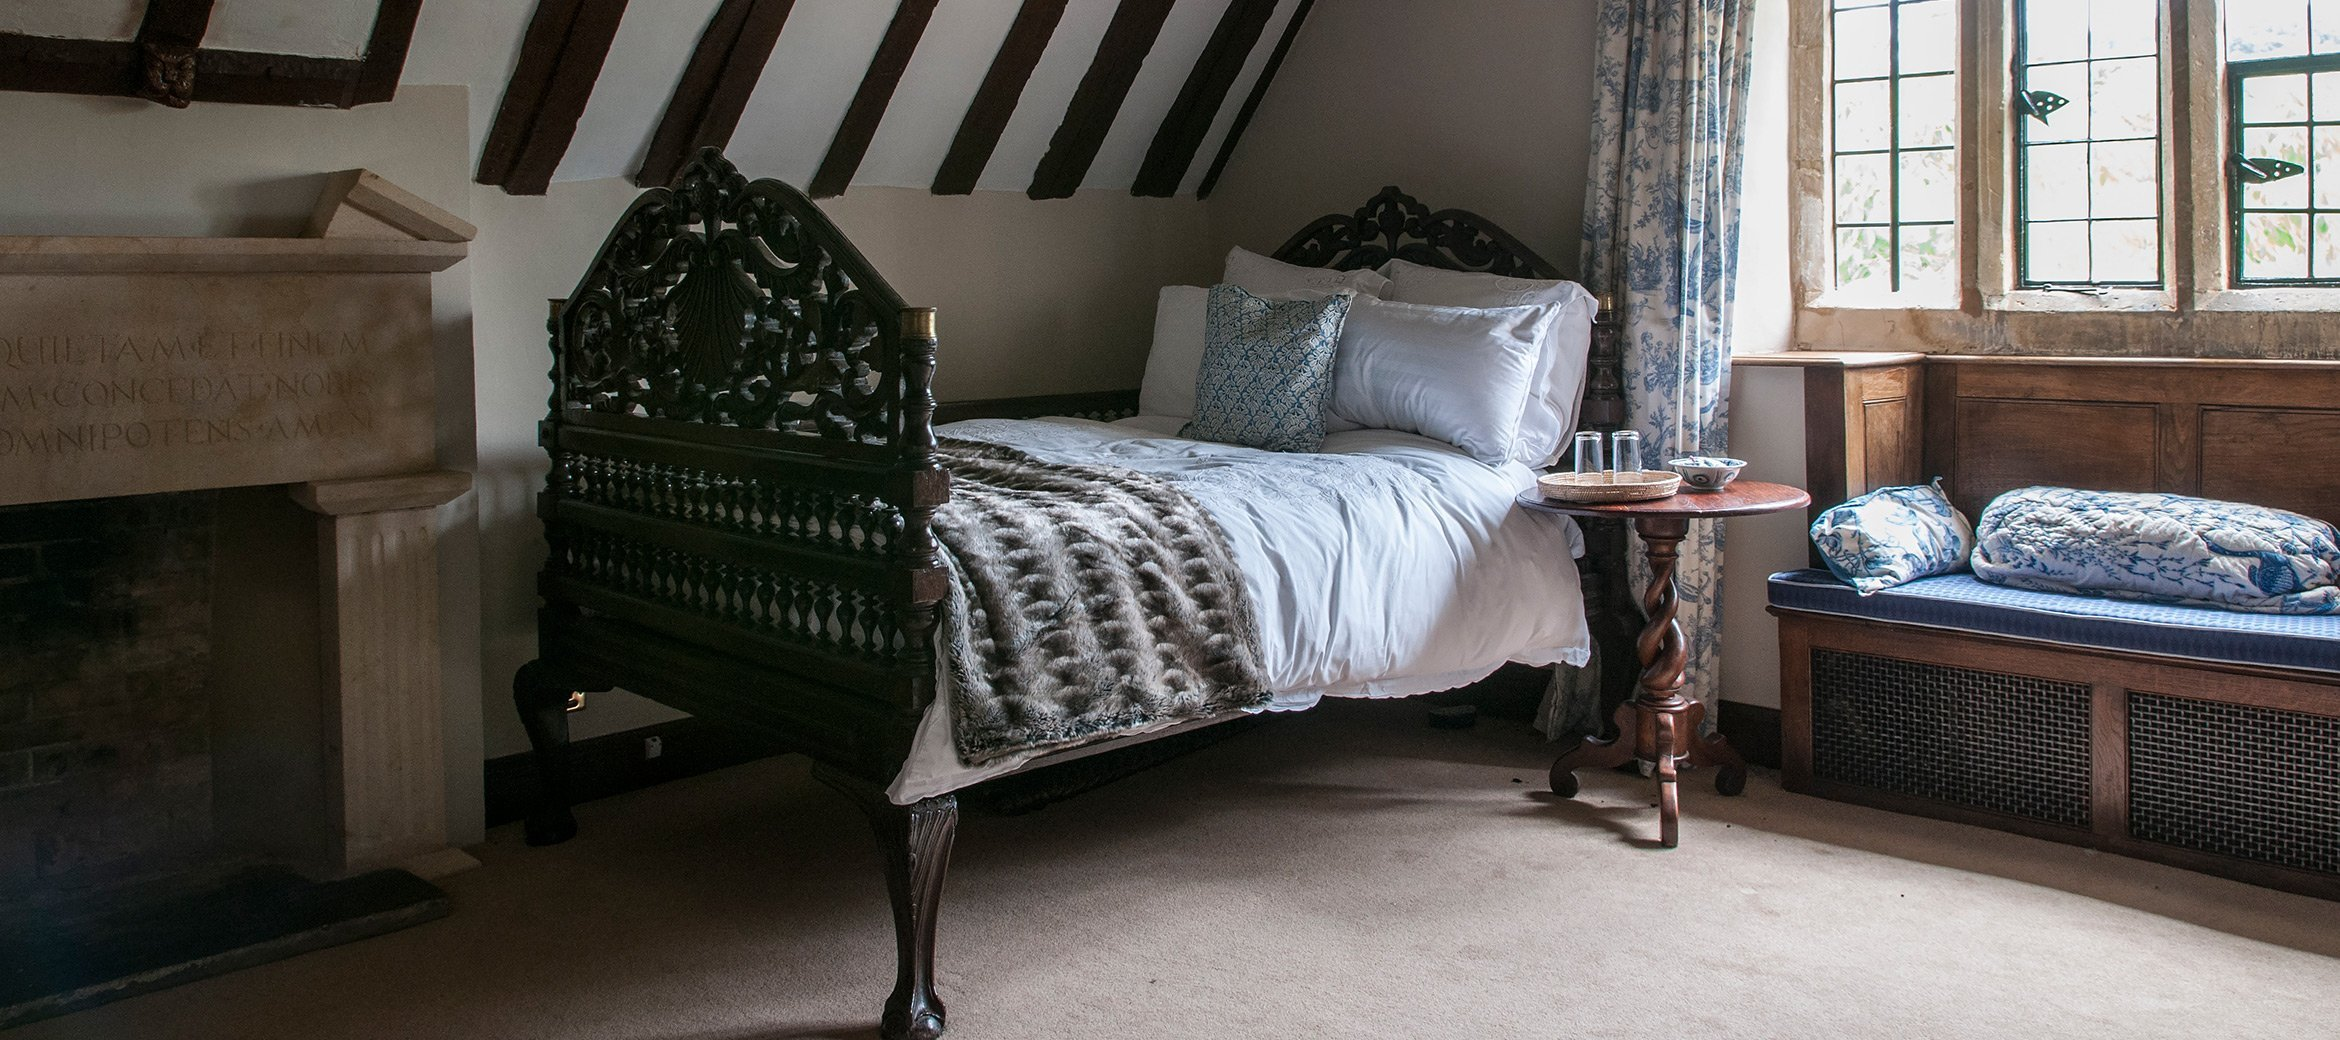 broadway-cotswold-manor-house-bedroom